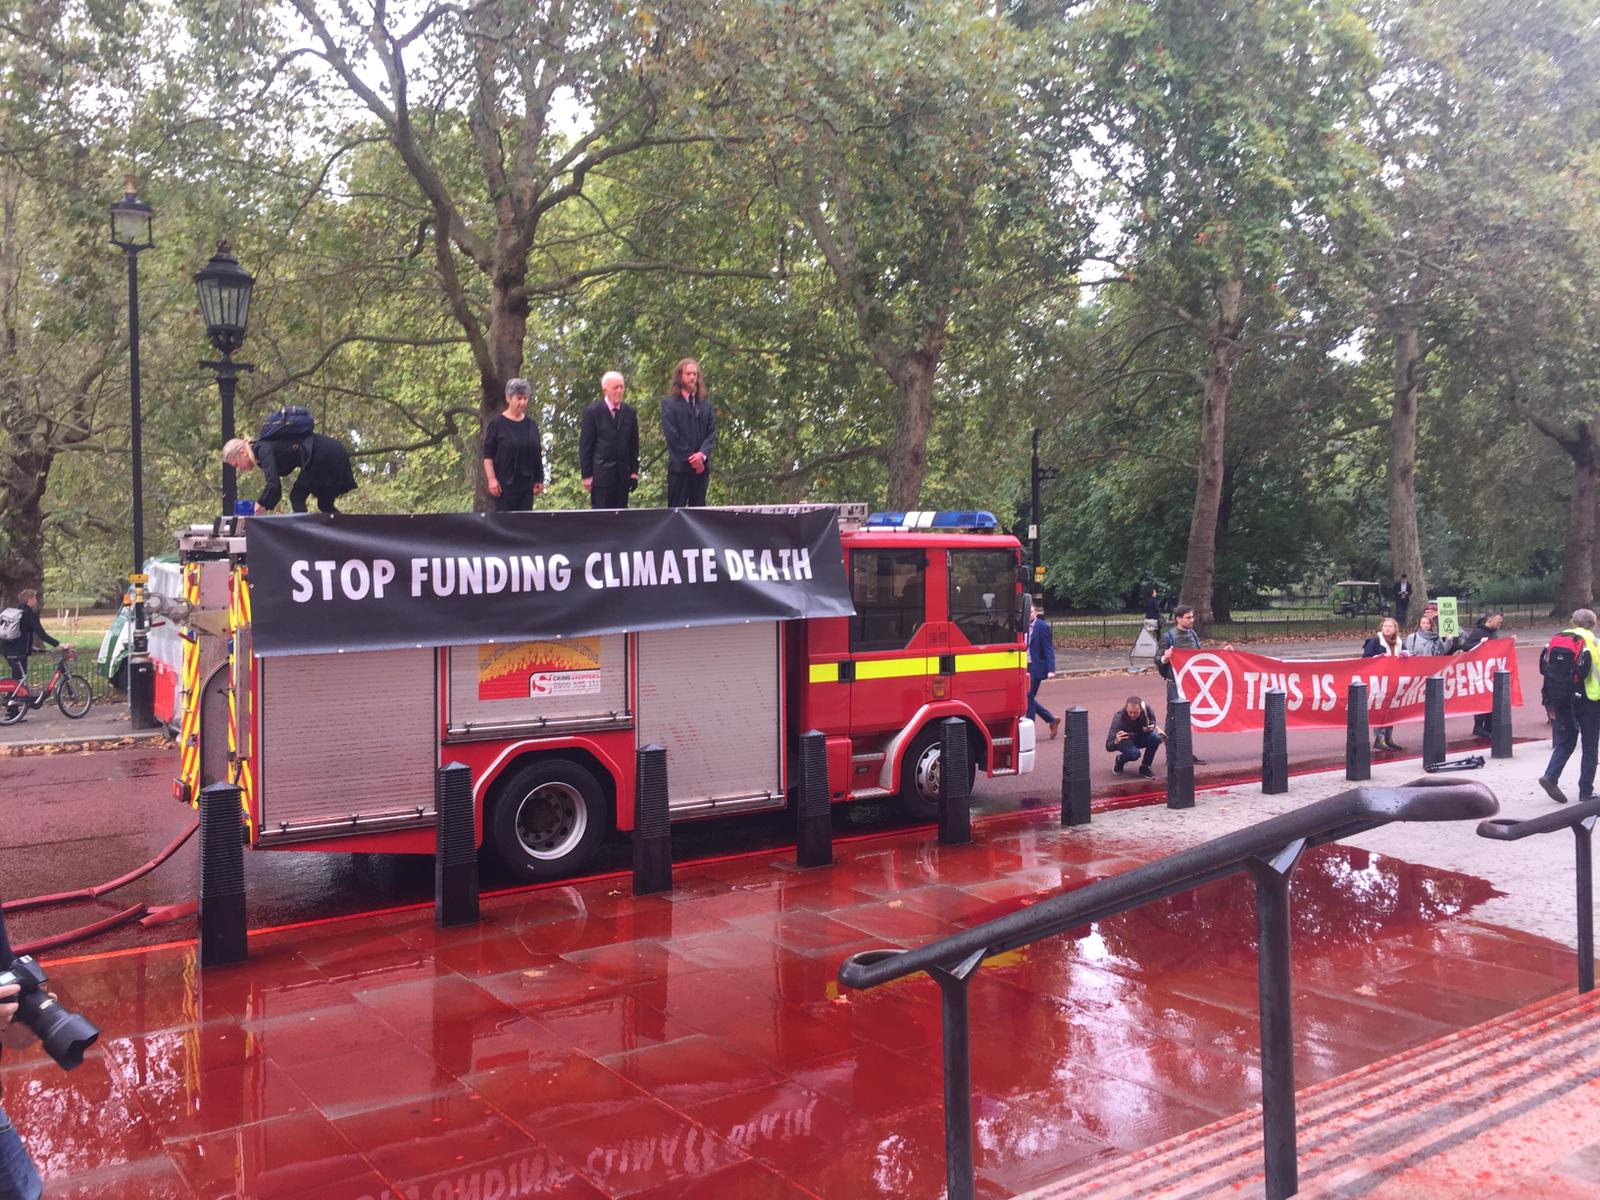 Eight arrested after Extinction Rebellion loses control of fake blood fire hose